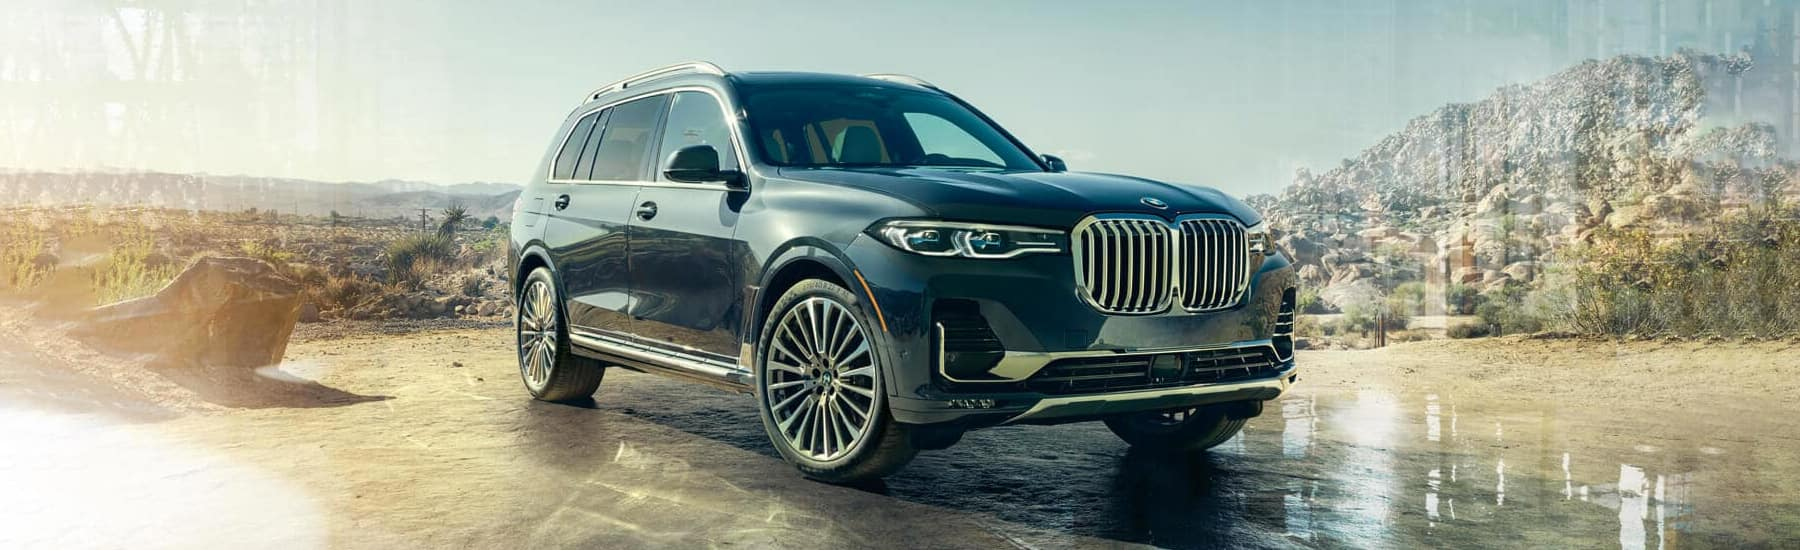 east bay bmw x7 launch